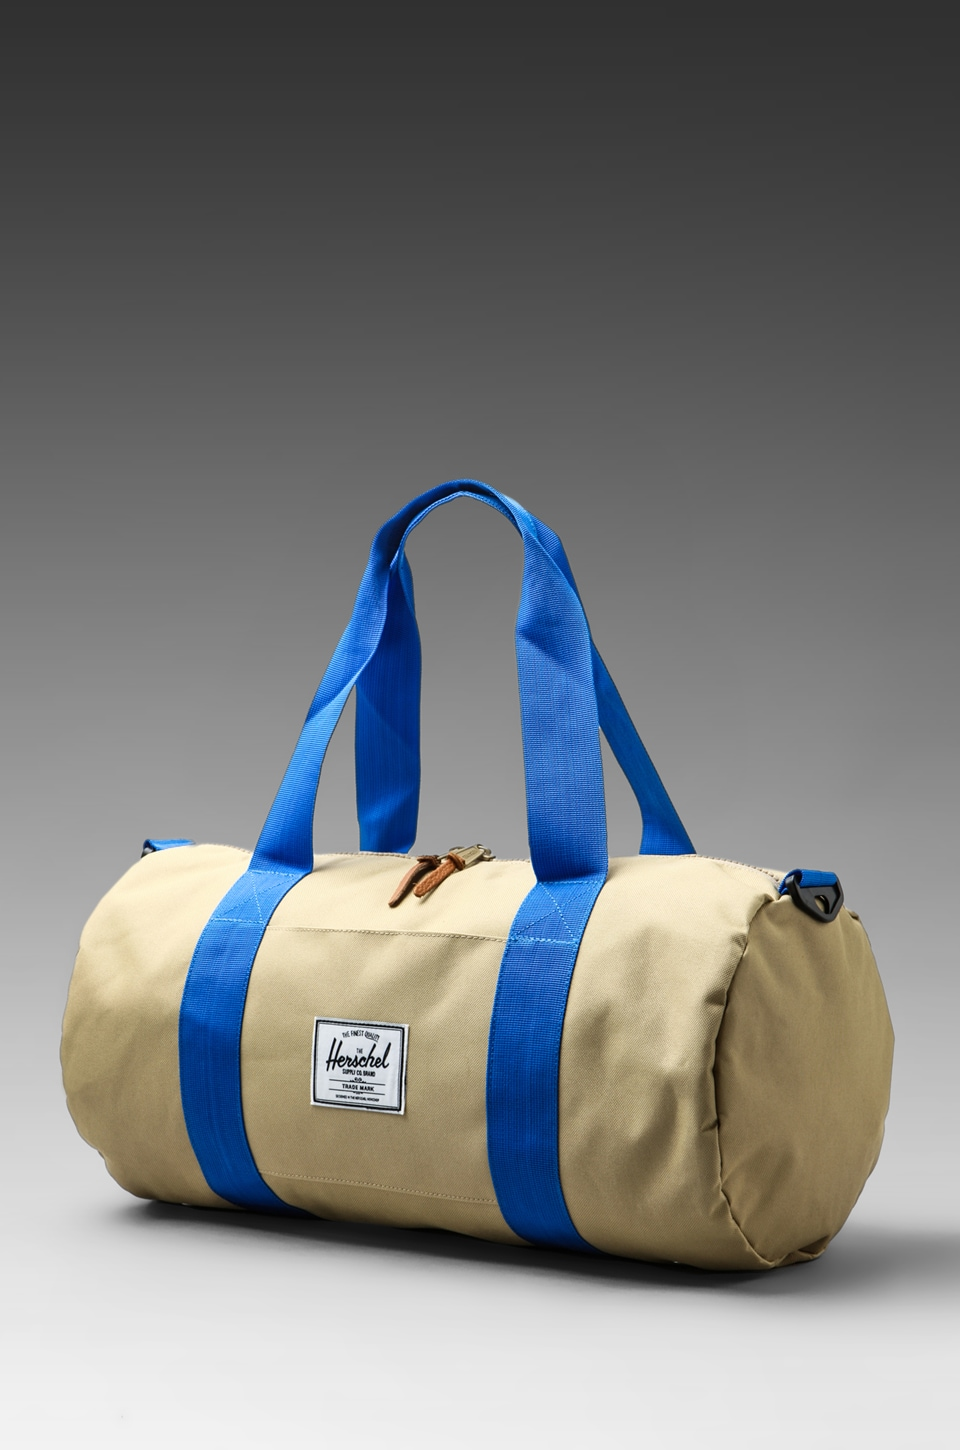 Herschel Supply Co. Sutton Bag Mid Size Duffle in Khaki/Cobalt